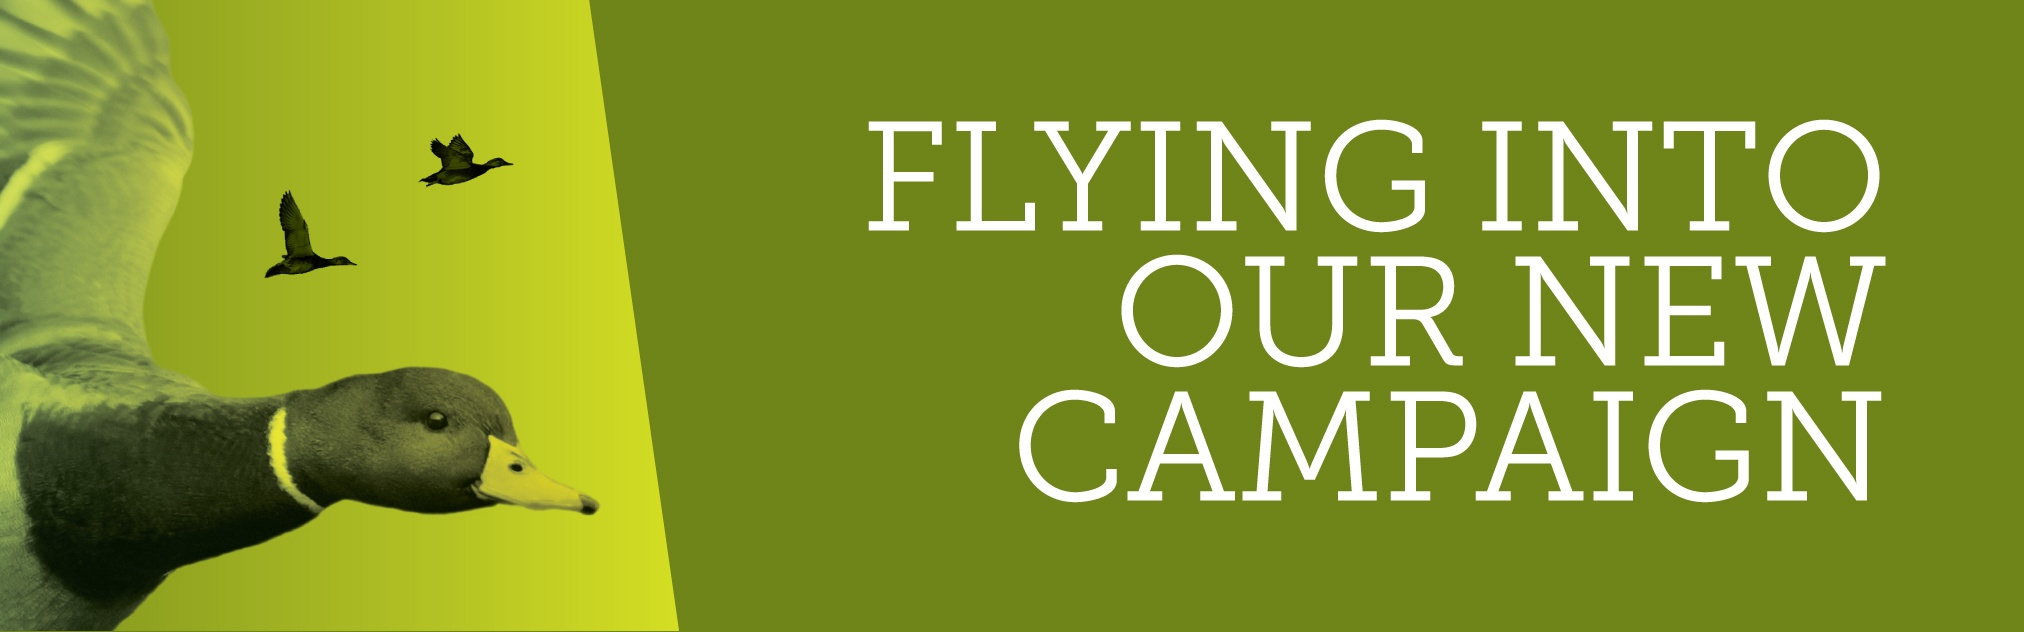 Campaign Takes Flight: Join Us